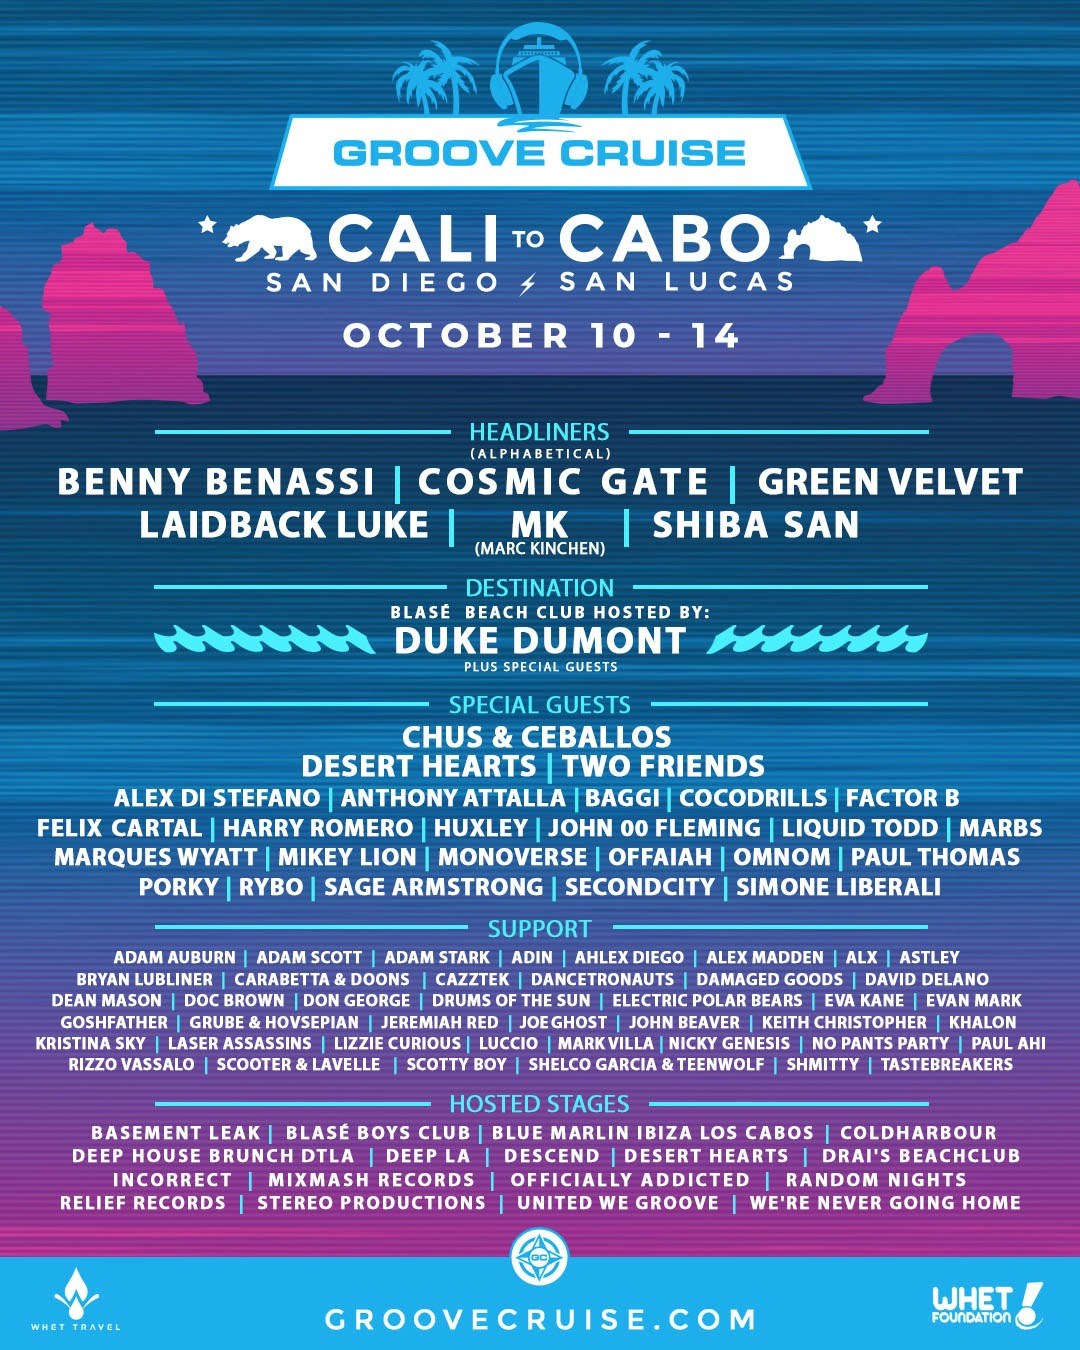 Groove Cruise Cabo 2018 - Flyer front